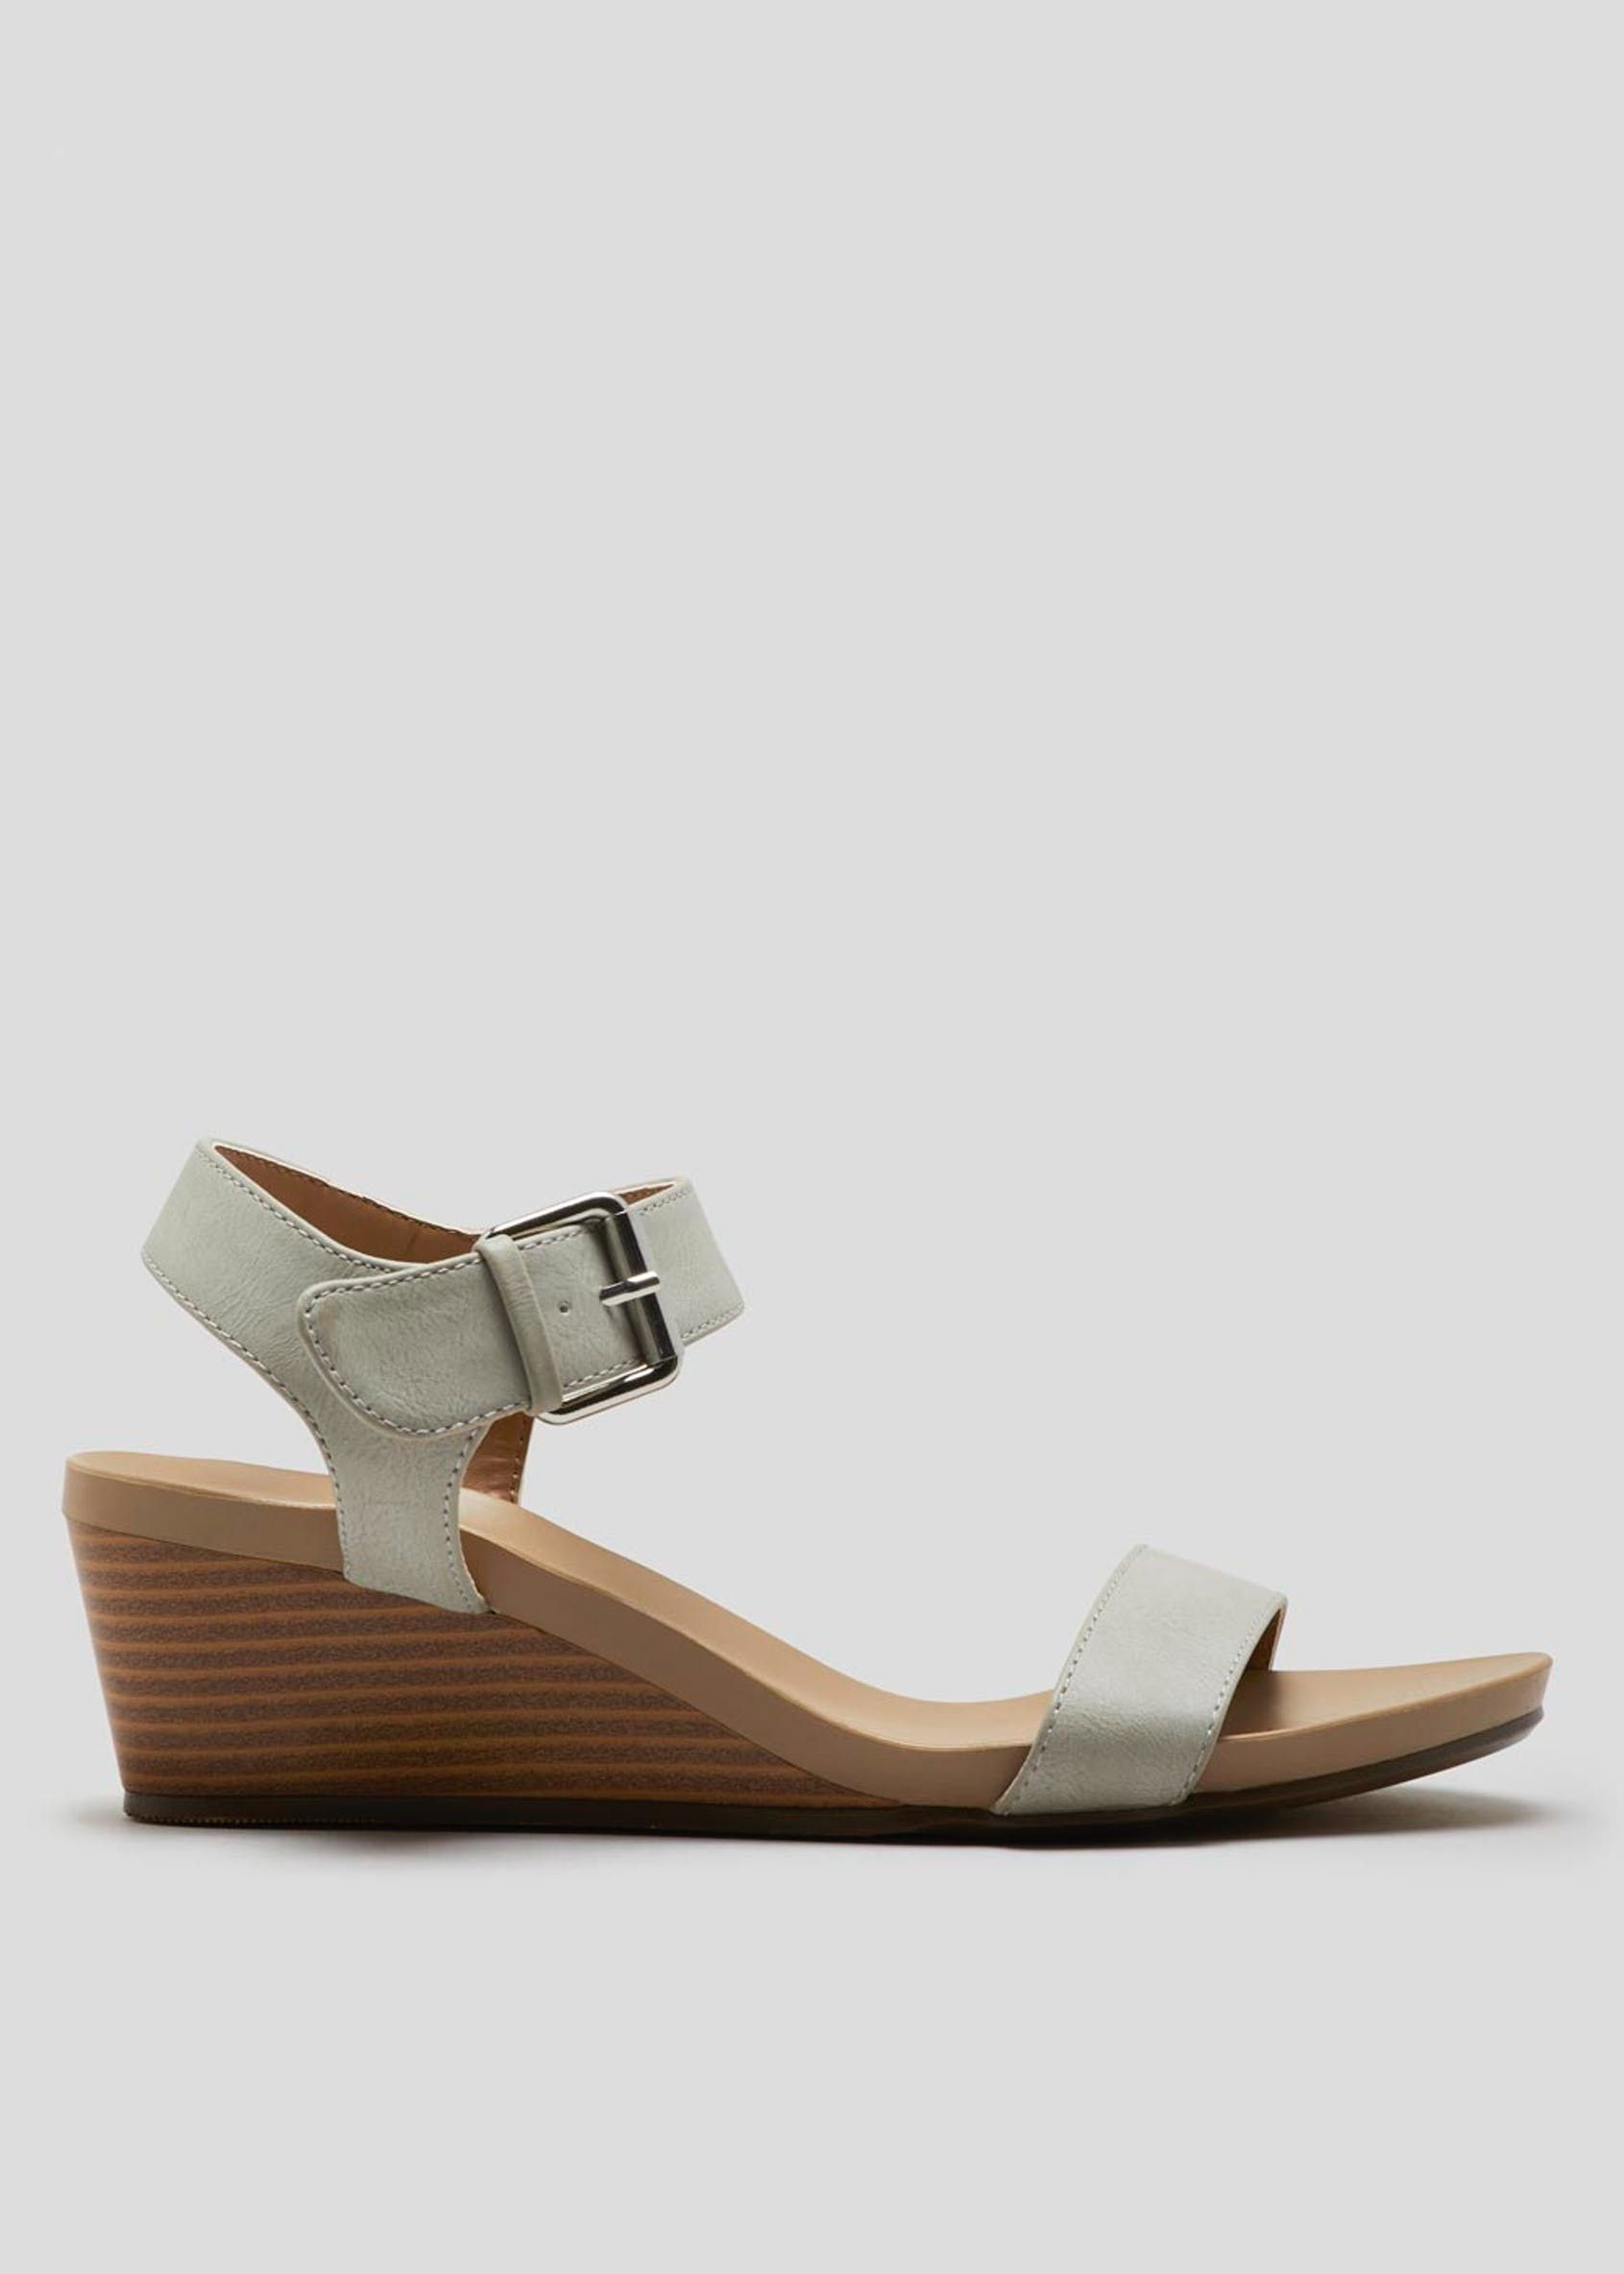 a0dba7f107 Soleflex Buckle Wedges in 2019 | Footware | Wedges, Fashion, Ankle strap